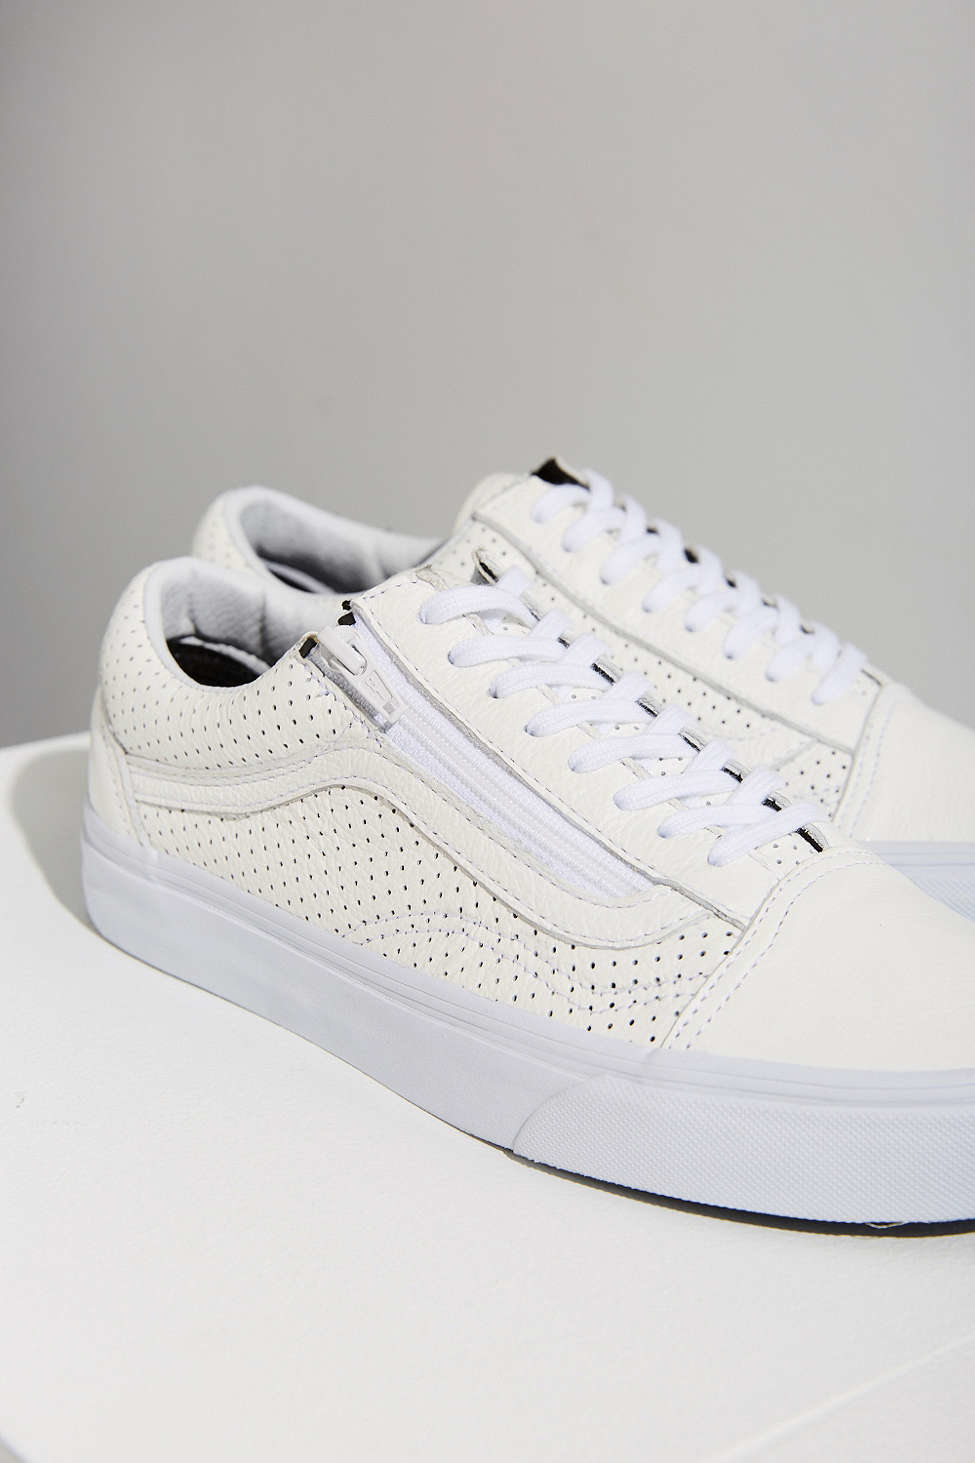 c34469b79120 Vans Perforated Leather Old Skool Zip Sneaker in White - Lyst